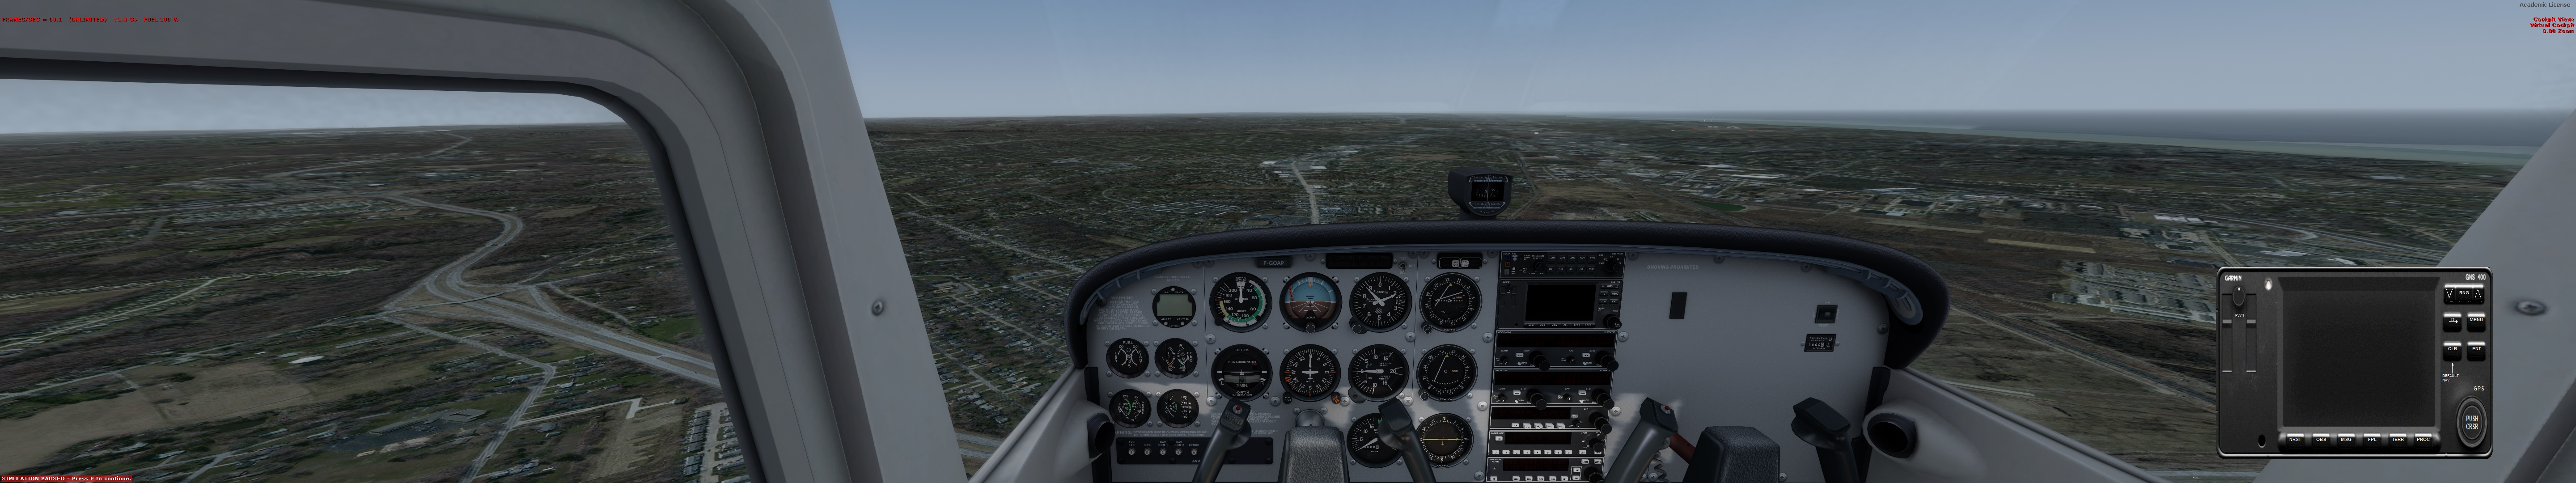 fsx 2014-02-10 23-31-46-643 photoreal east of cleveland